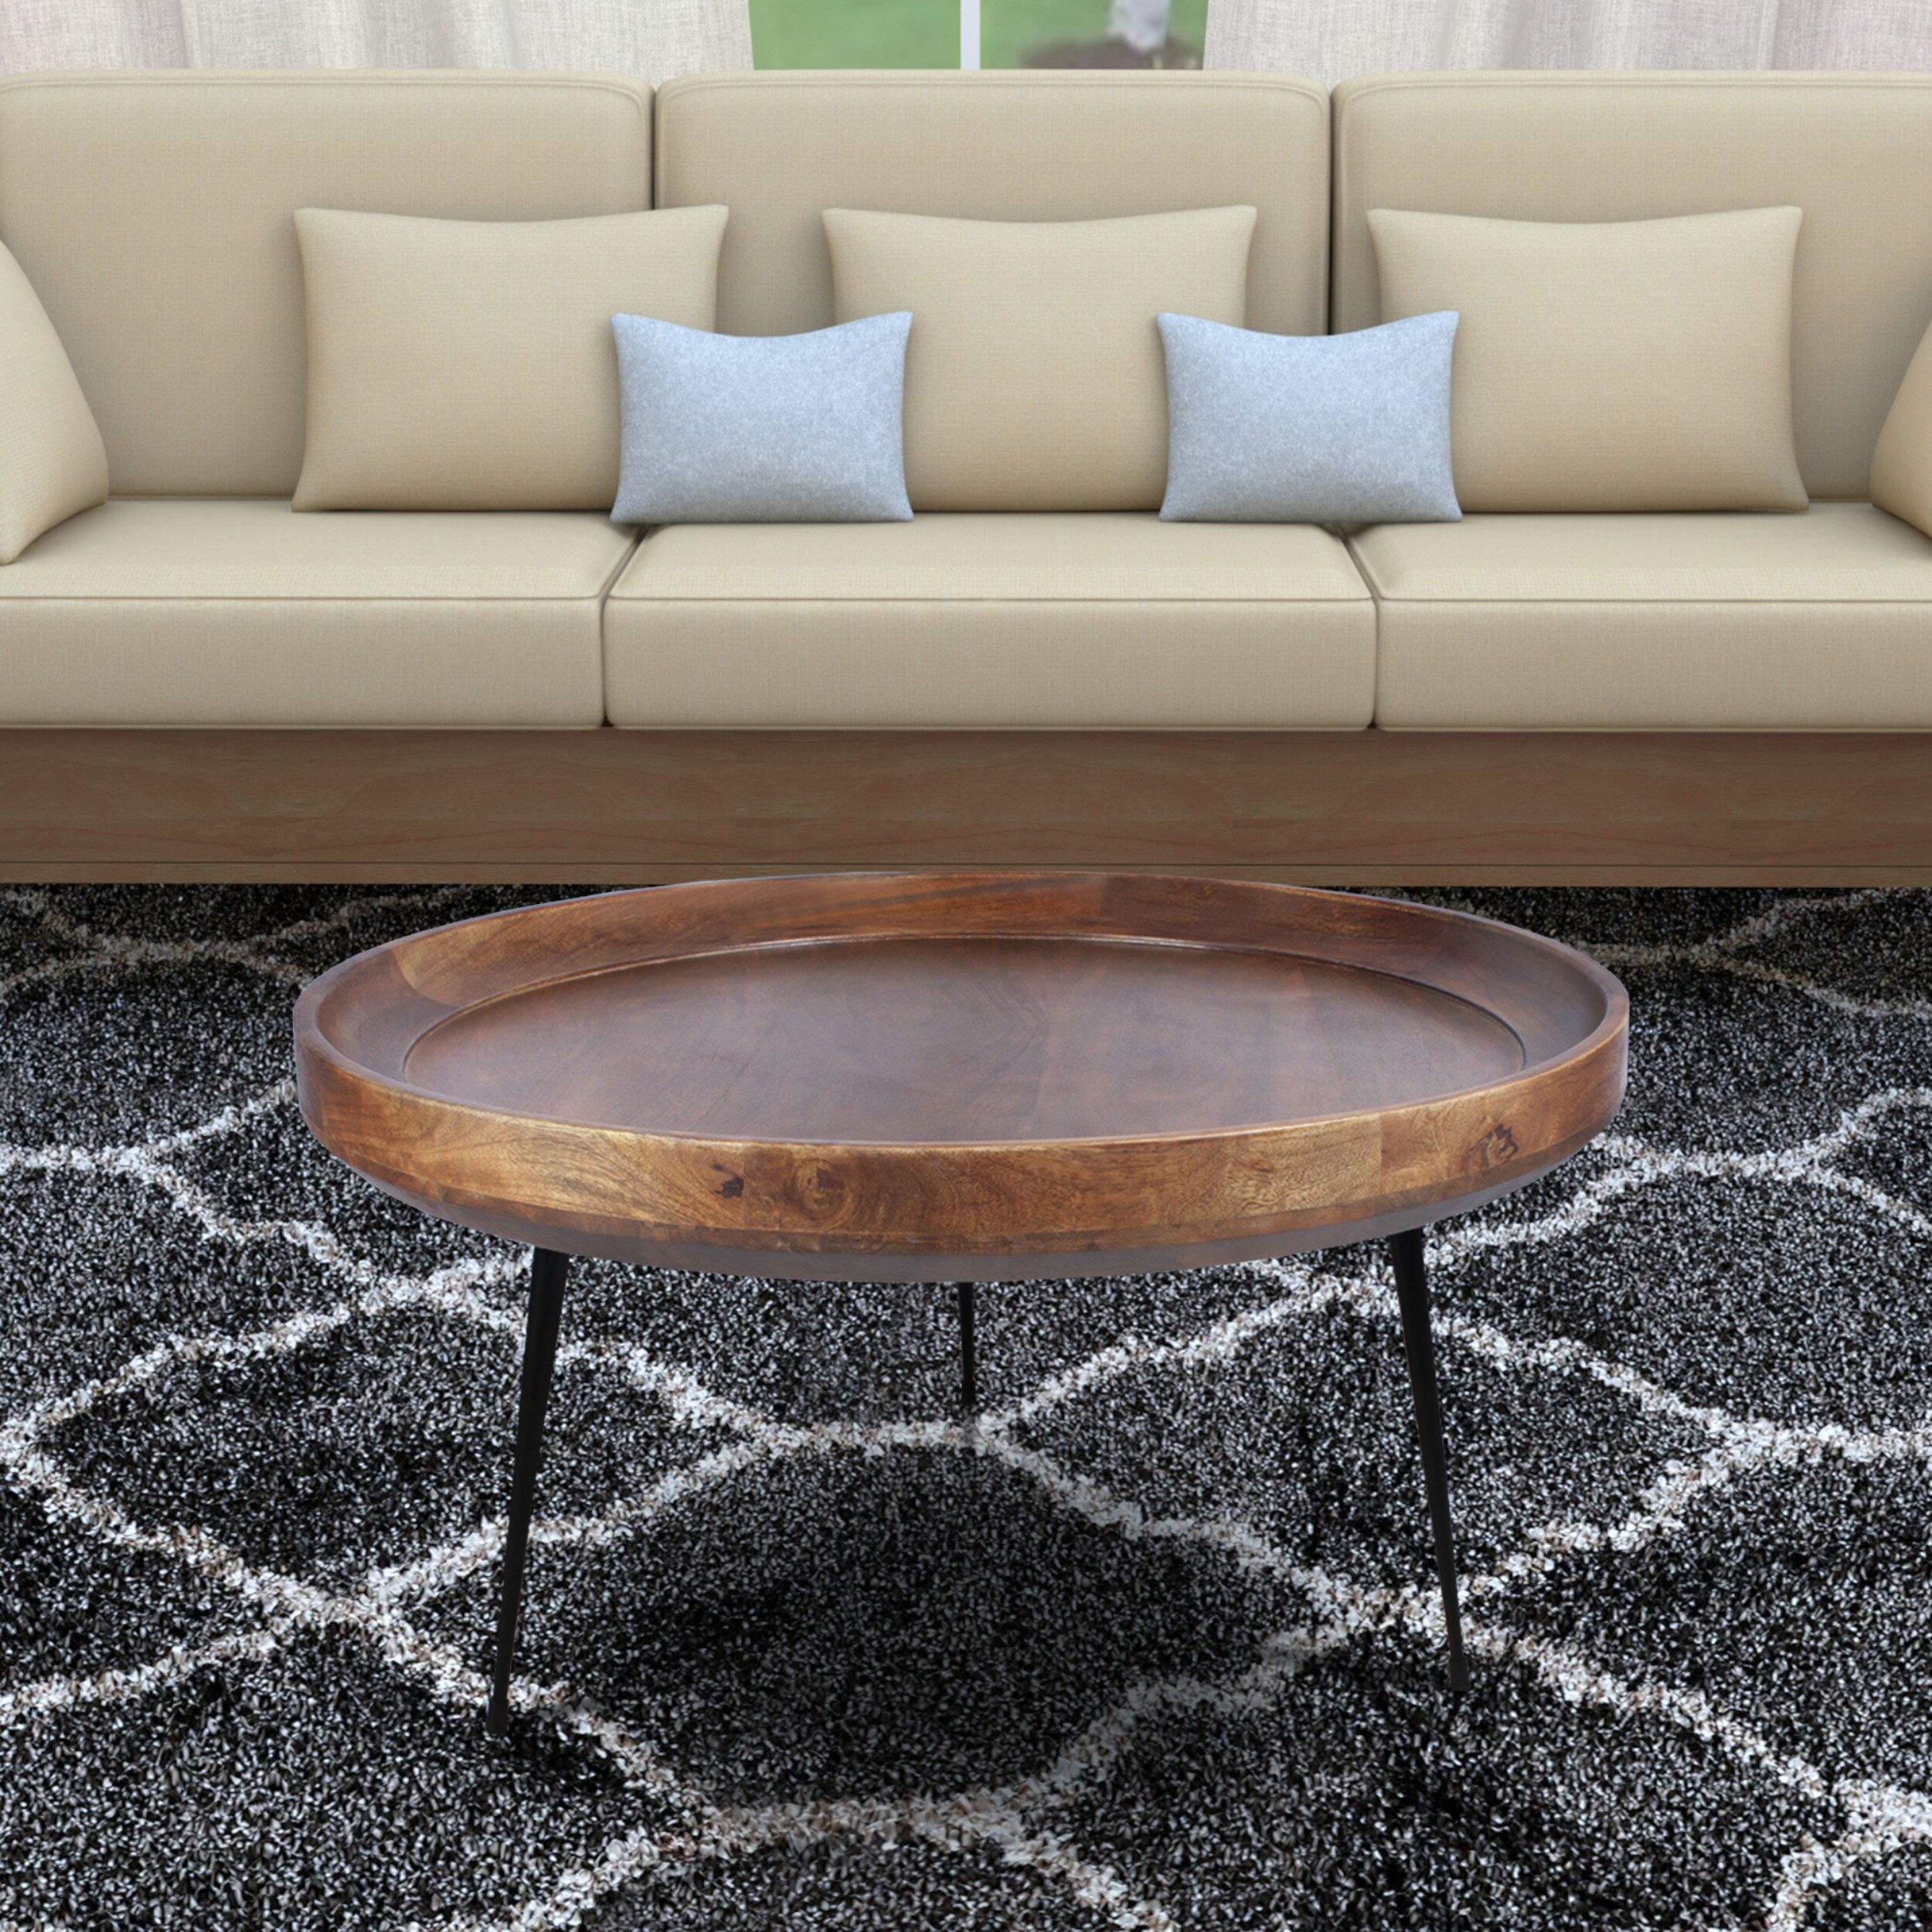 Streeter Round Mango Wood Coffee Table With Tray Top